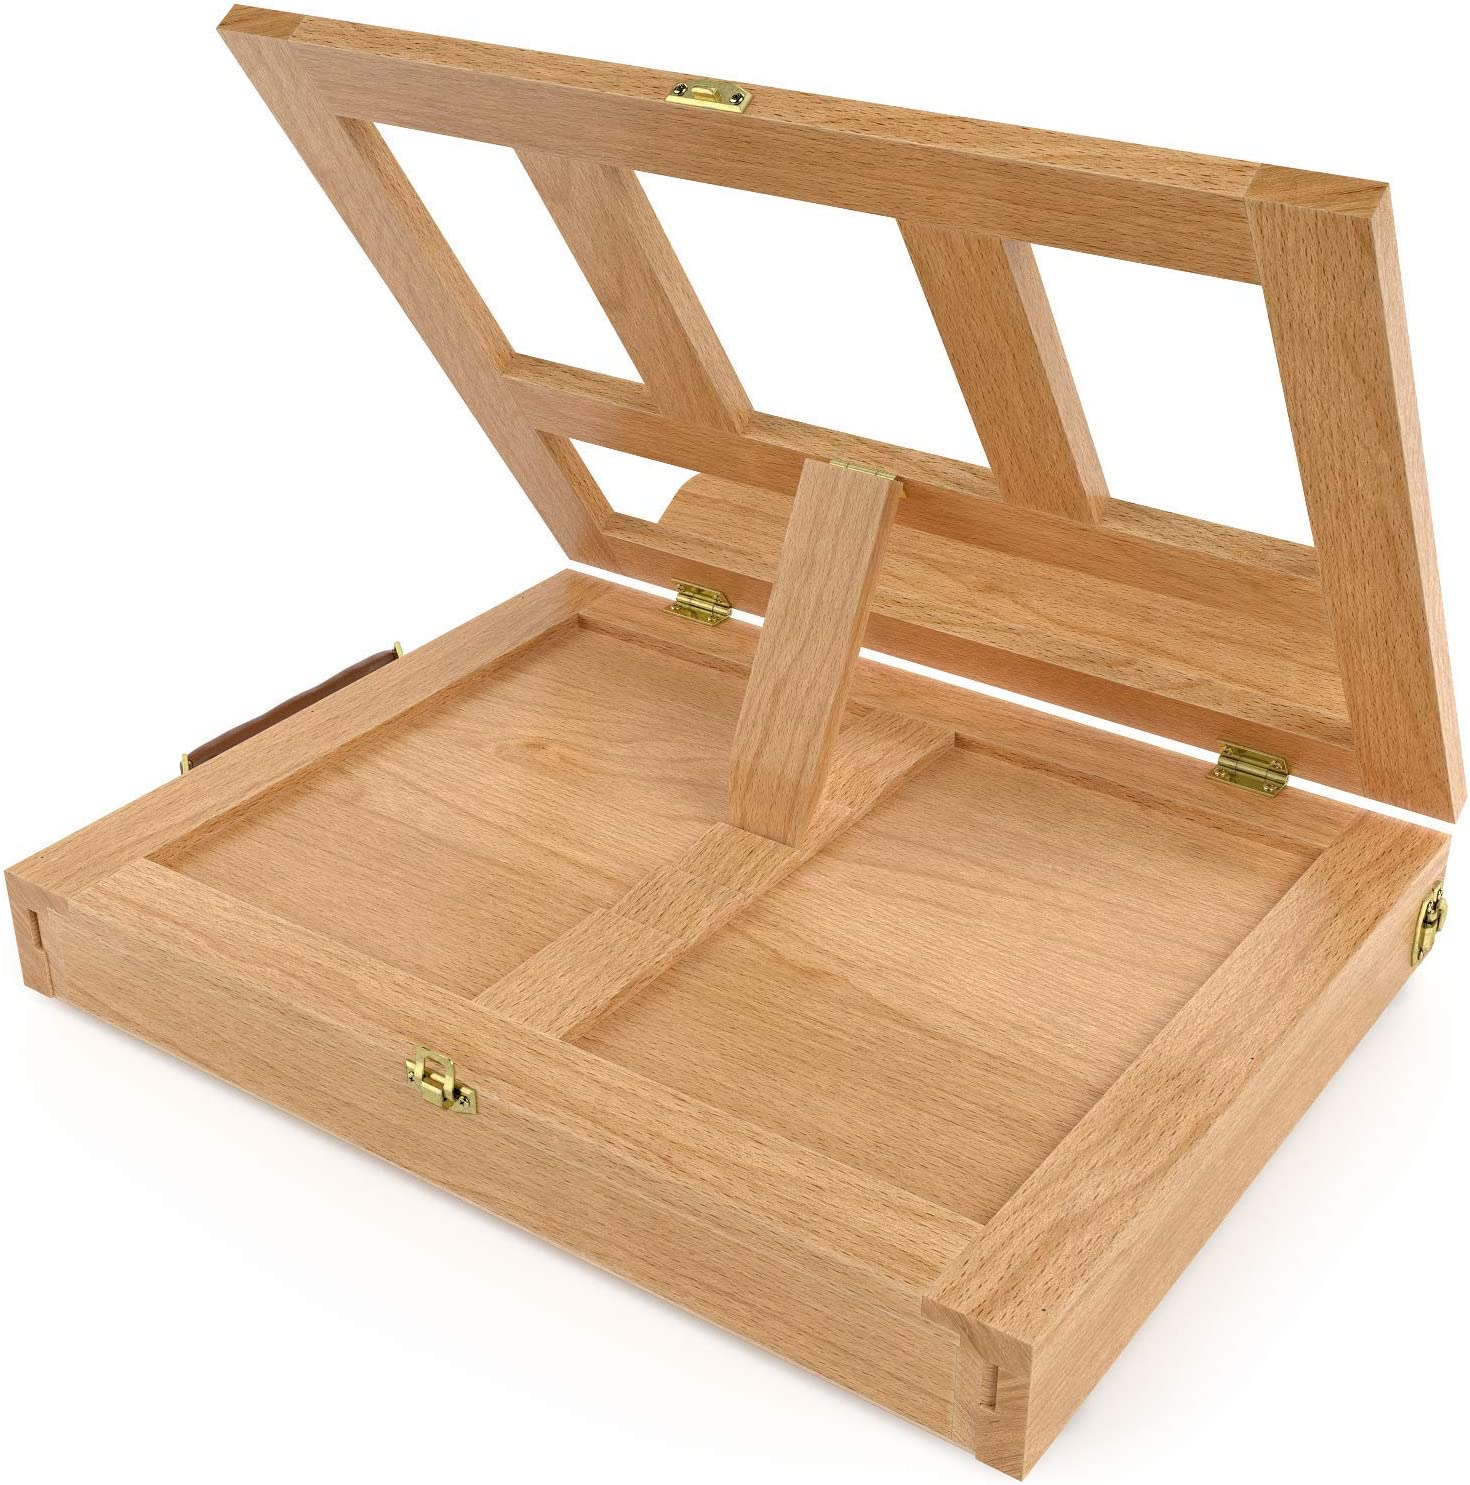 Adjustable Desk /& Table Easel with Storage Drawer and Palette Arteza Wood Tabletop Easel 13.38 x 10.25 x 2 Inch Portable Artist Easel Box Drawing /& Displaying Artwork for Painting